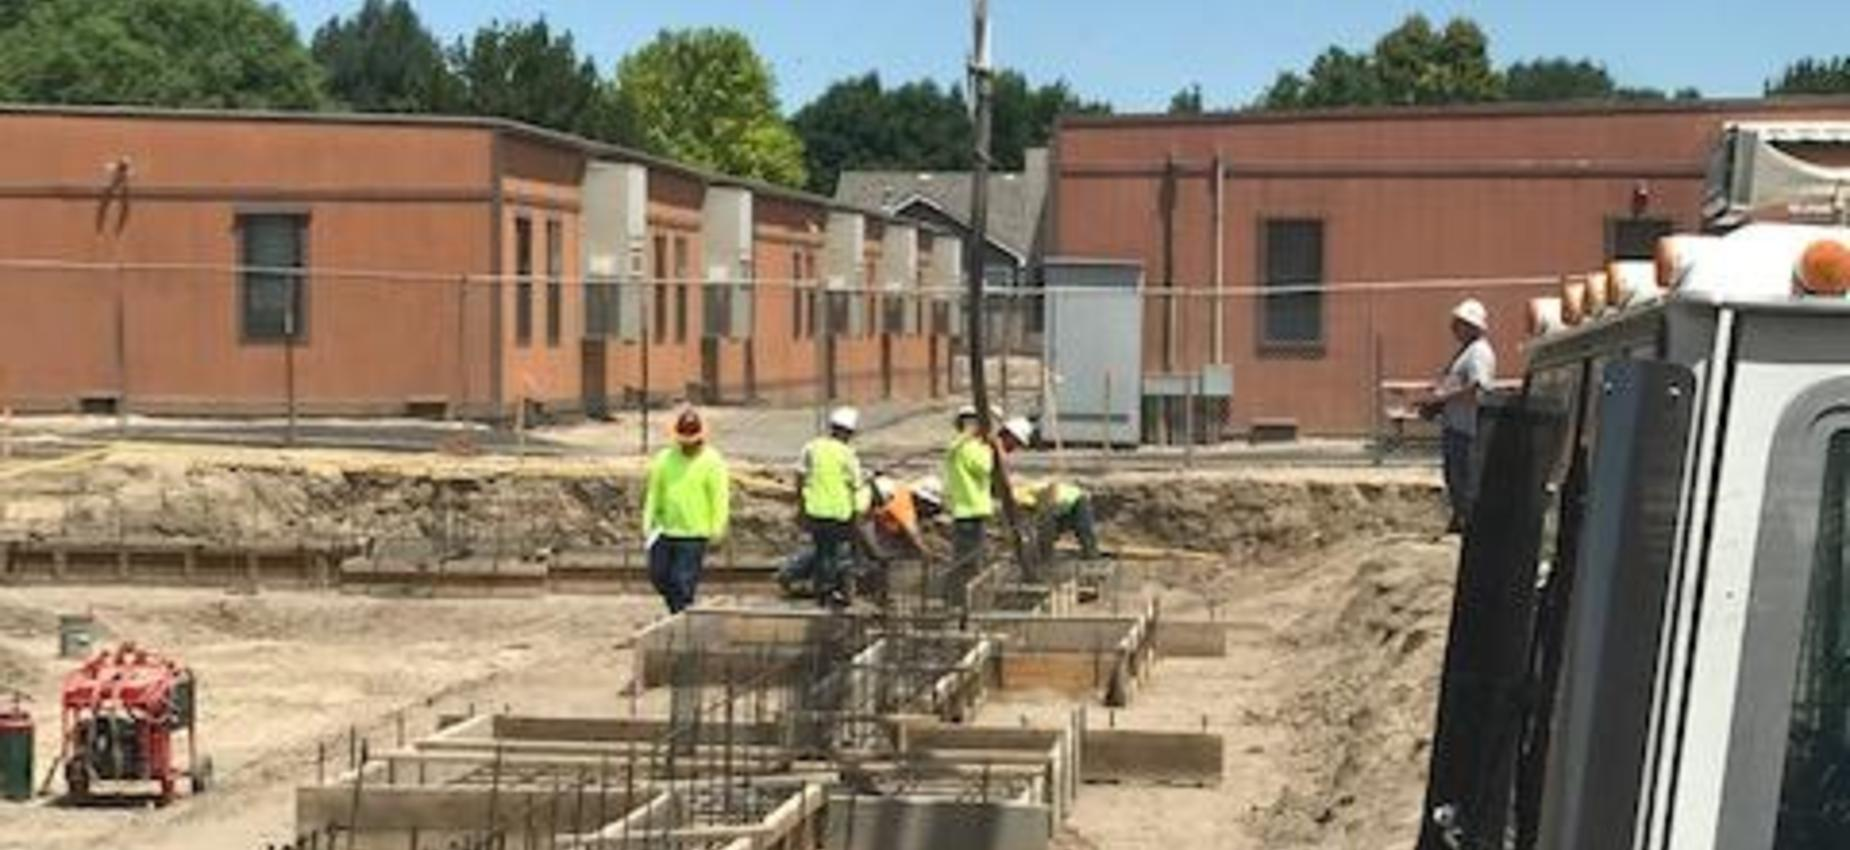 Phase II Building Project first concrete pour